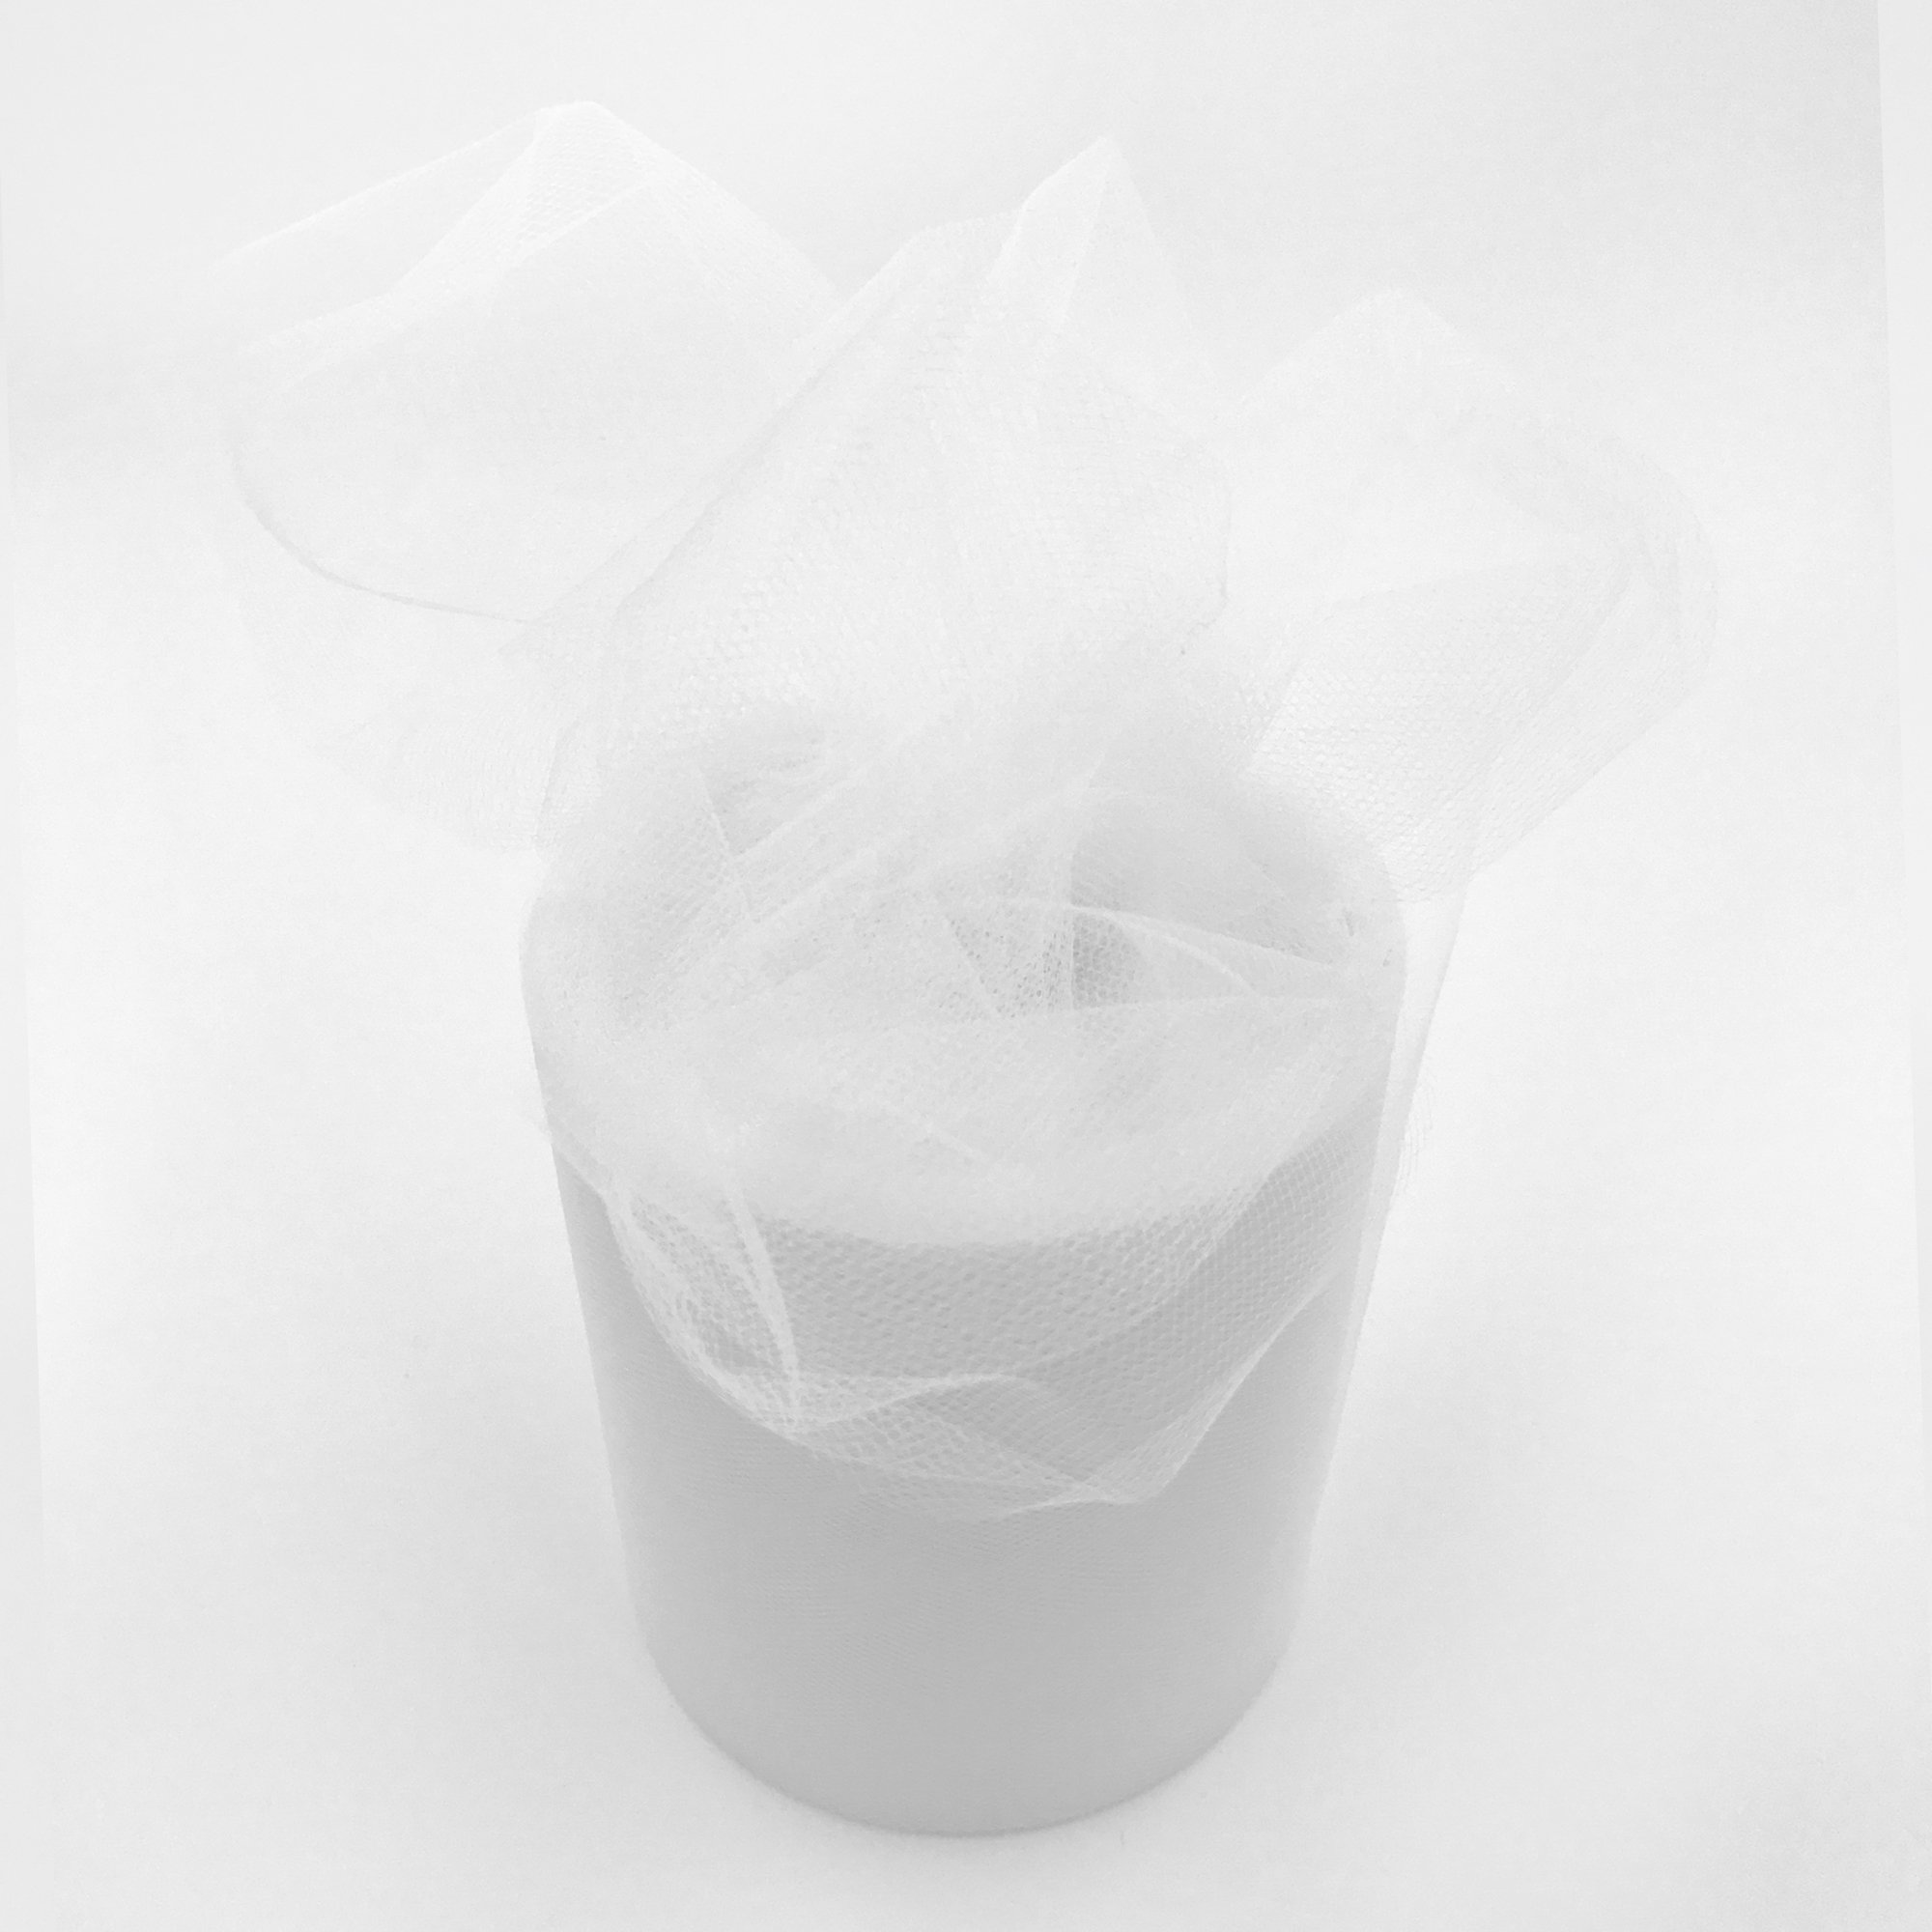 Craft and Party, 6'' by 200 Yards (600 ft) Fabric Tulle Spool for Wedding and Decoration. Value Pack. (White) by Craft And Party (Image #1)